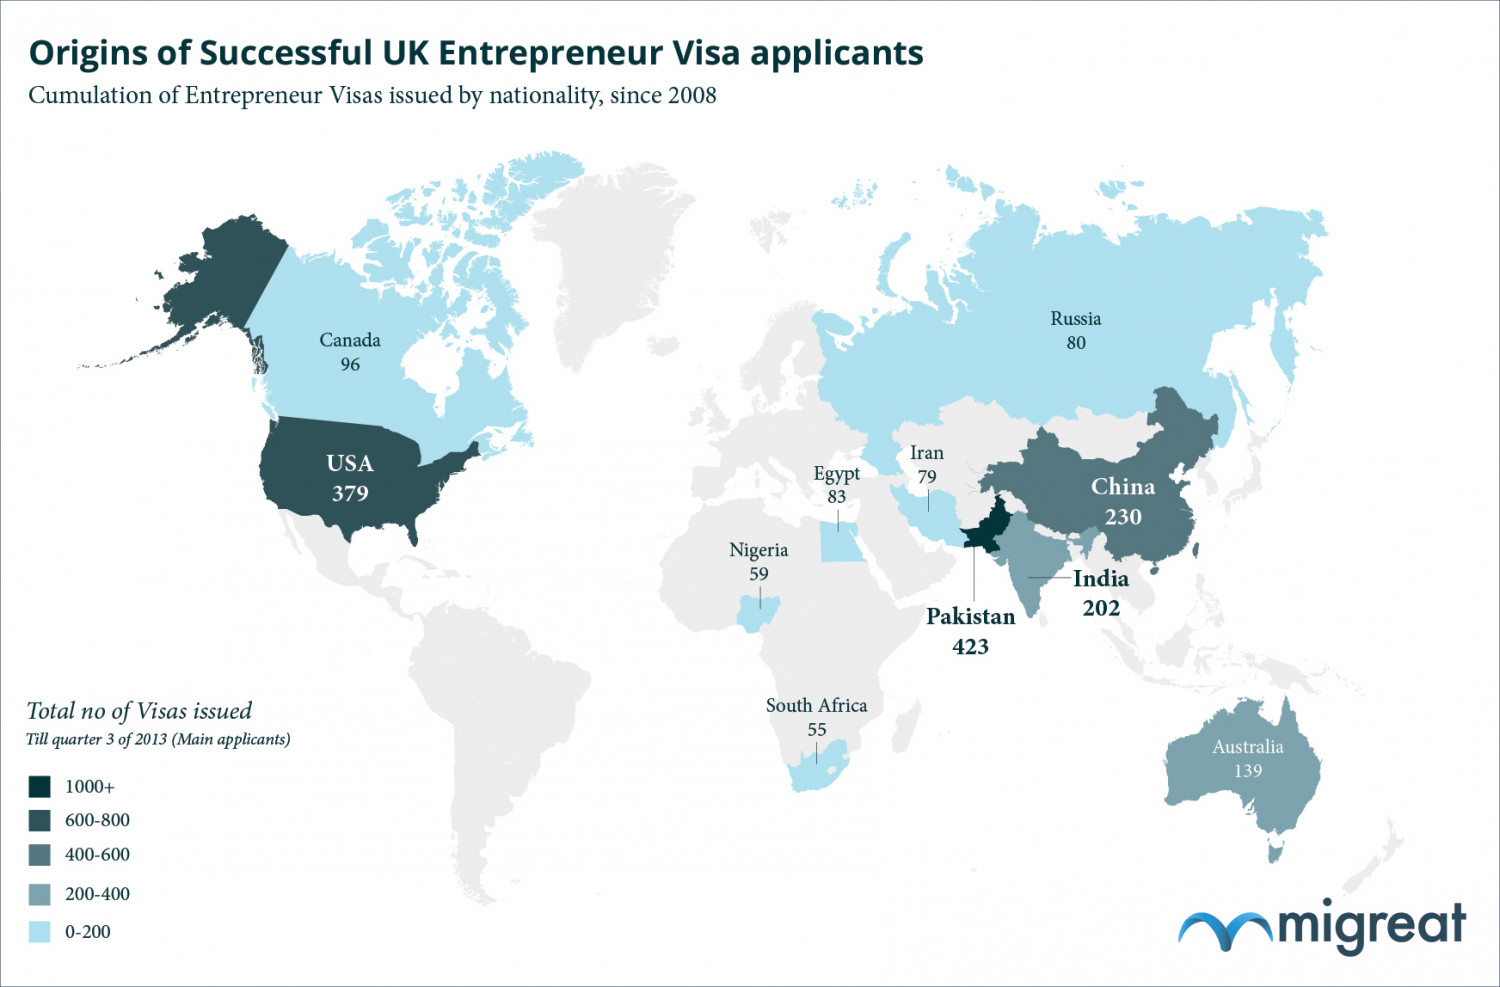 Origins of Successful UK Entrepreneur Visa Applicants Infographic